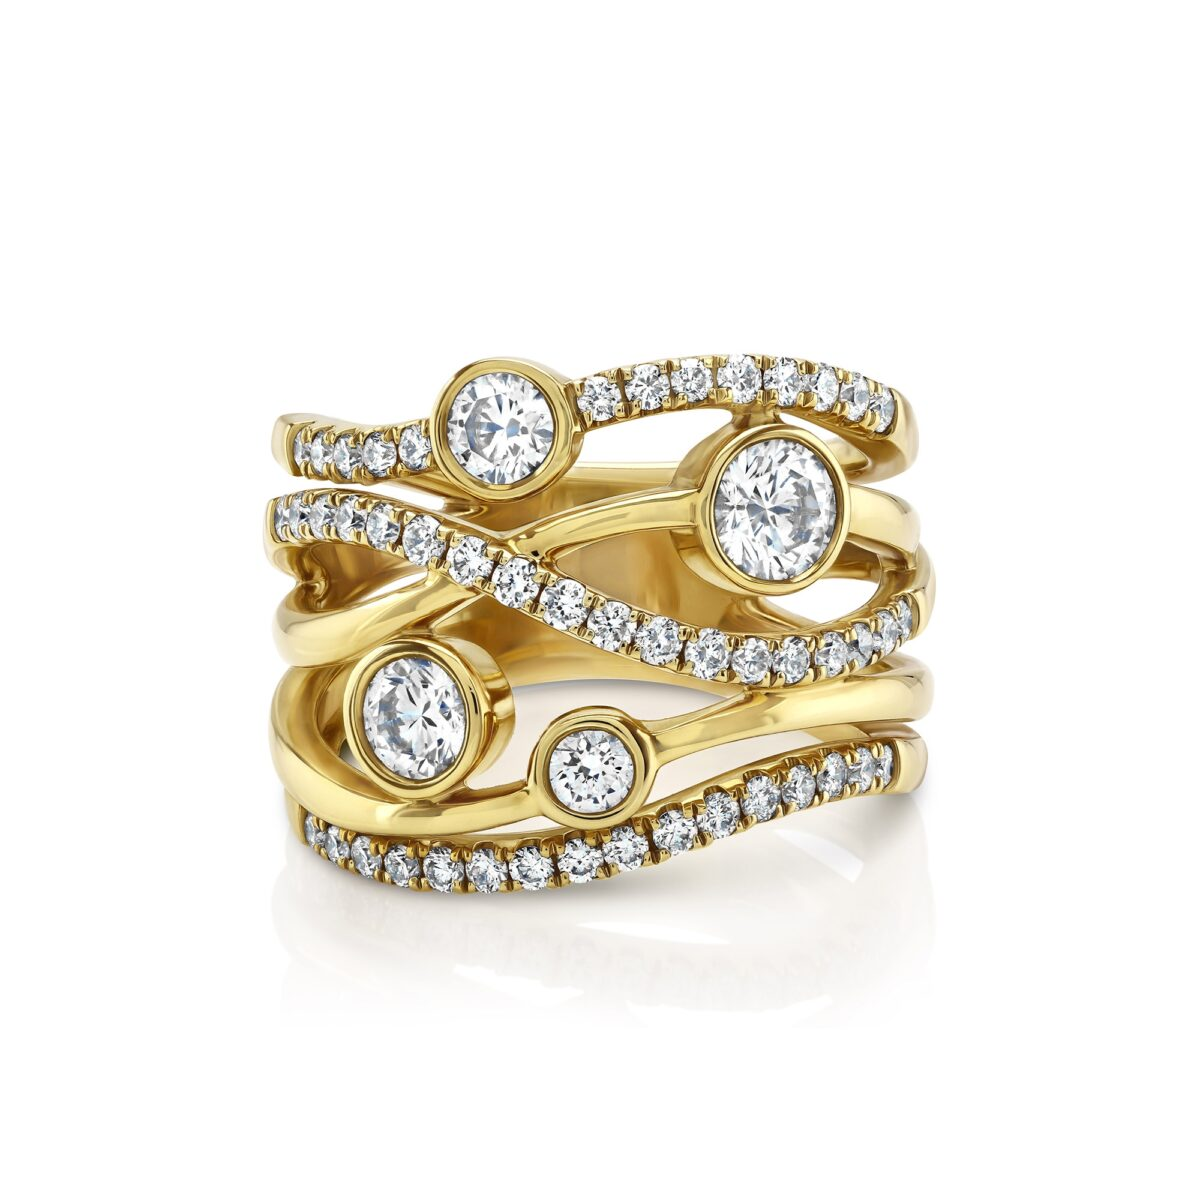 Lunar Yellow Gold Large Diamond Ring